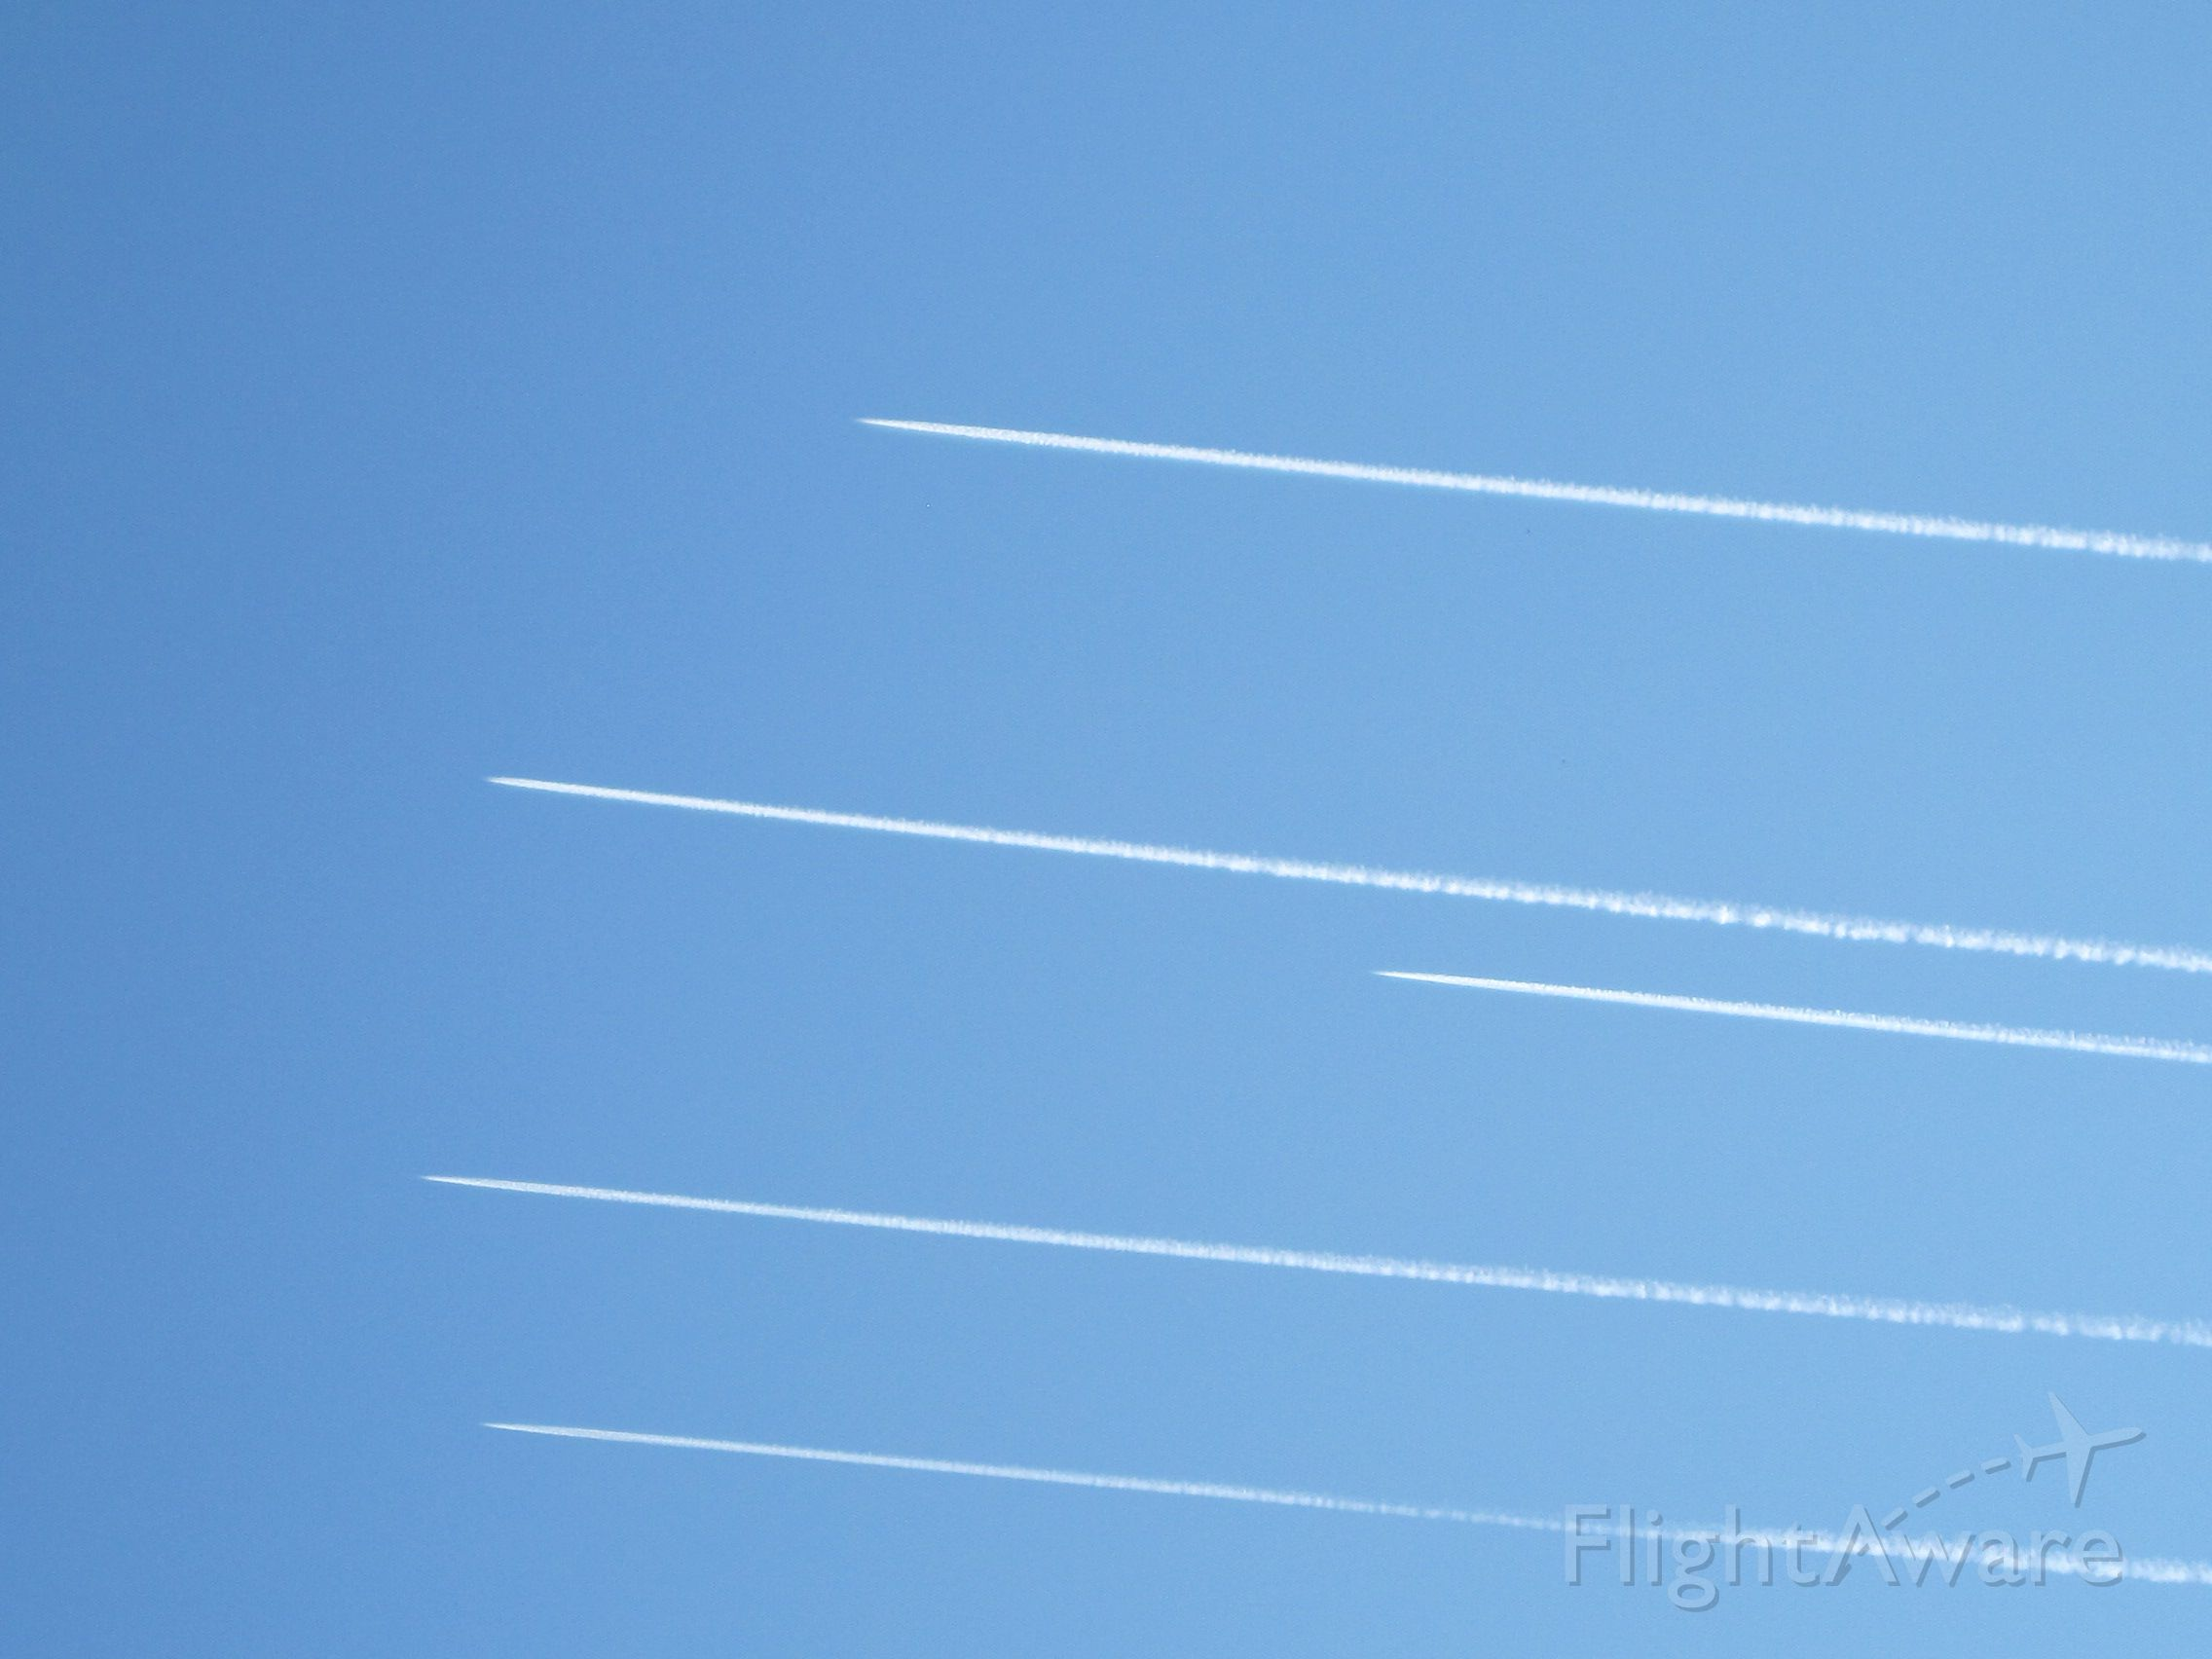 — — - I shot this from Northeastern Tennessee about 3 to 3:30 p.m. I believe, Saturday October 13 2012.  Thought it was an interesting formation, don't know who it was, but interesting nonetheless.